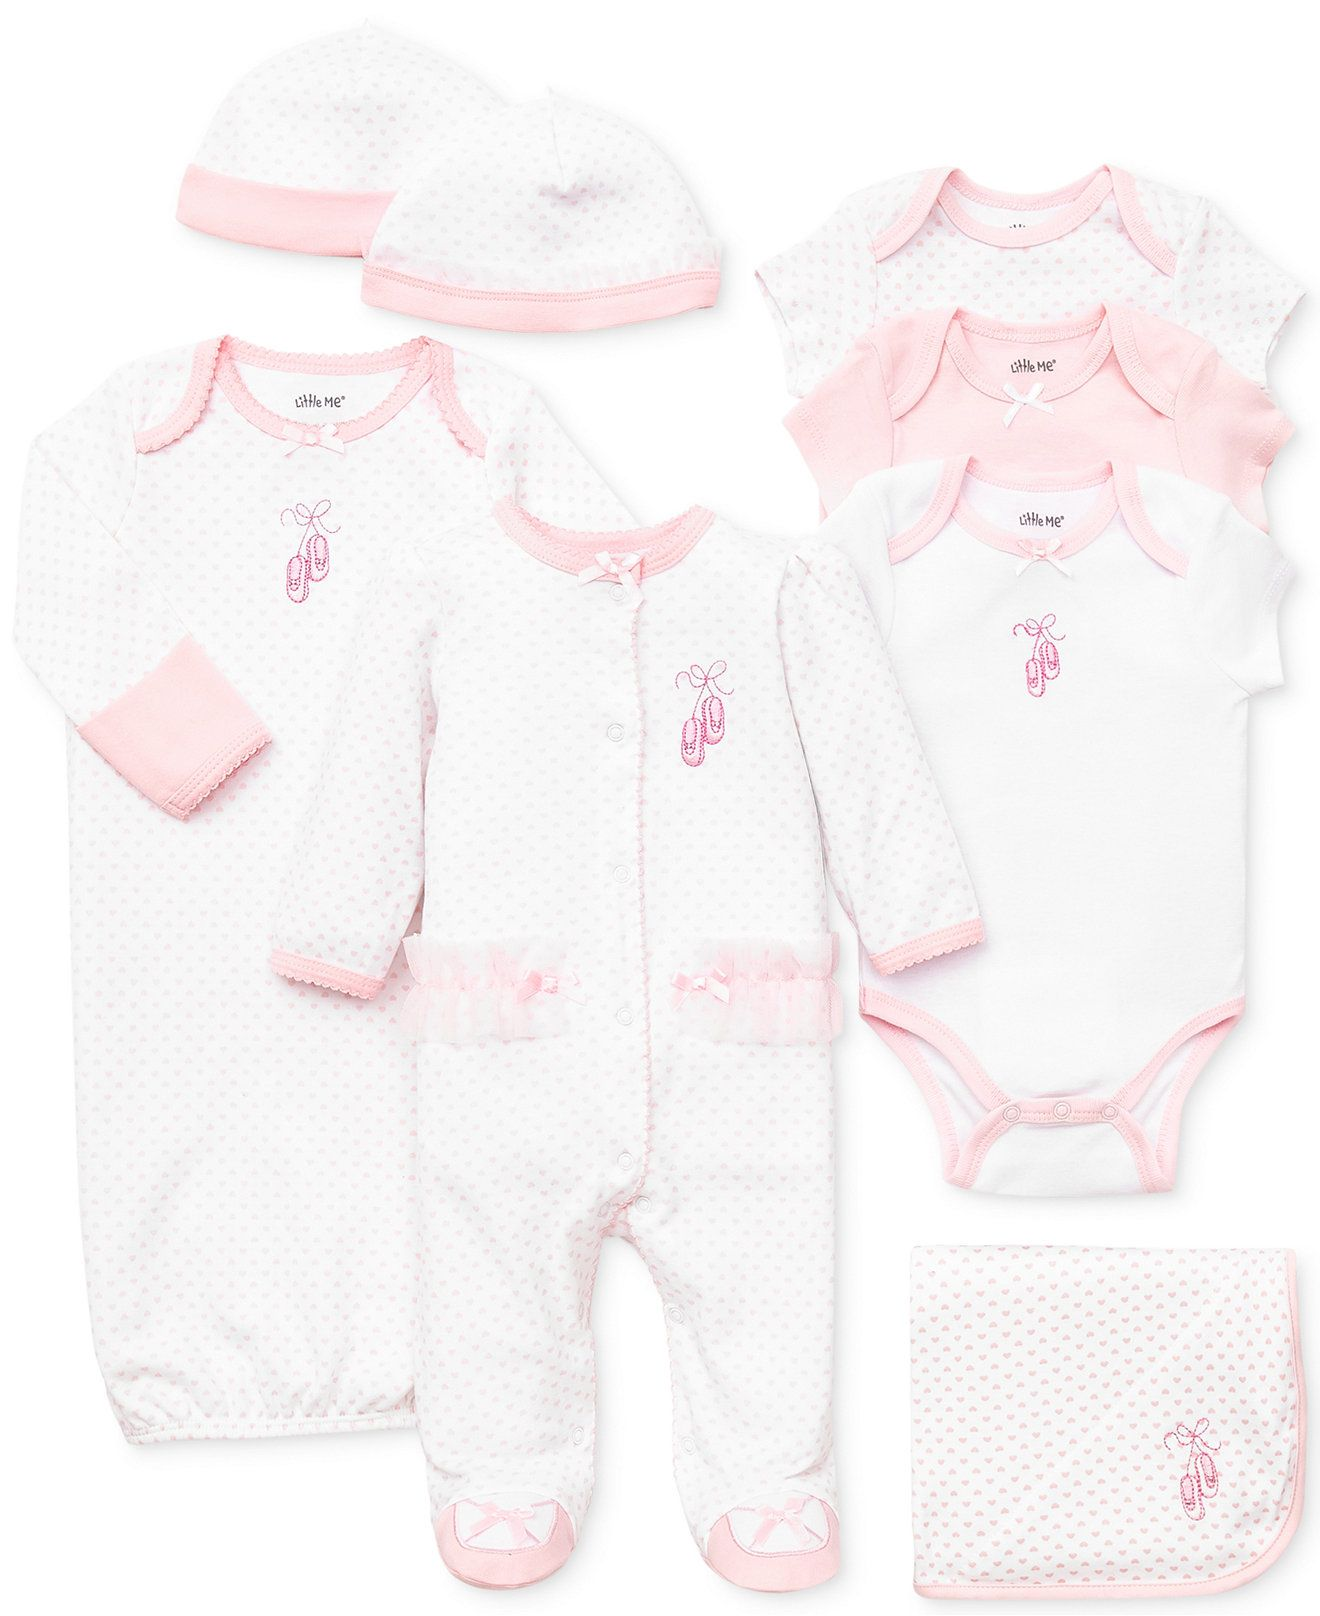 33ab17cde Little Me Baby Girls' Prima Ballerina Gift Bundle - Kids Newborn Shop -  Macy's